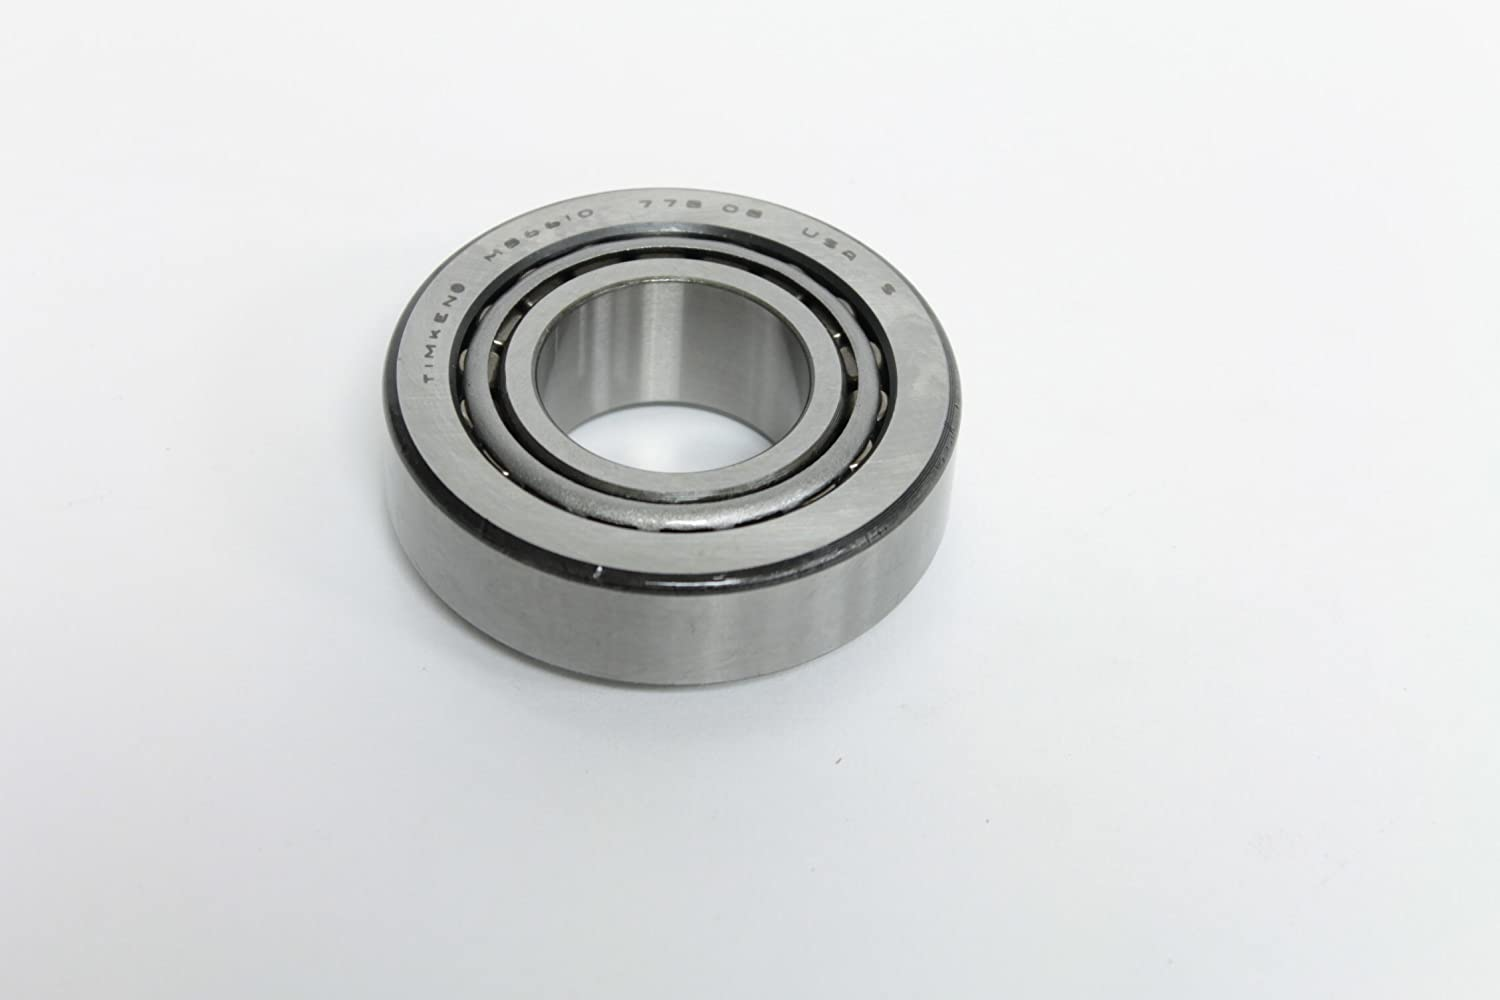 Differential Pinion Bearing General Motors 9417784 Automotive ...